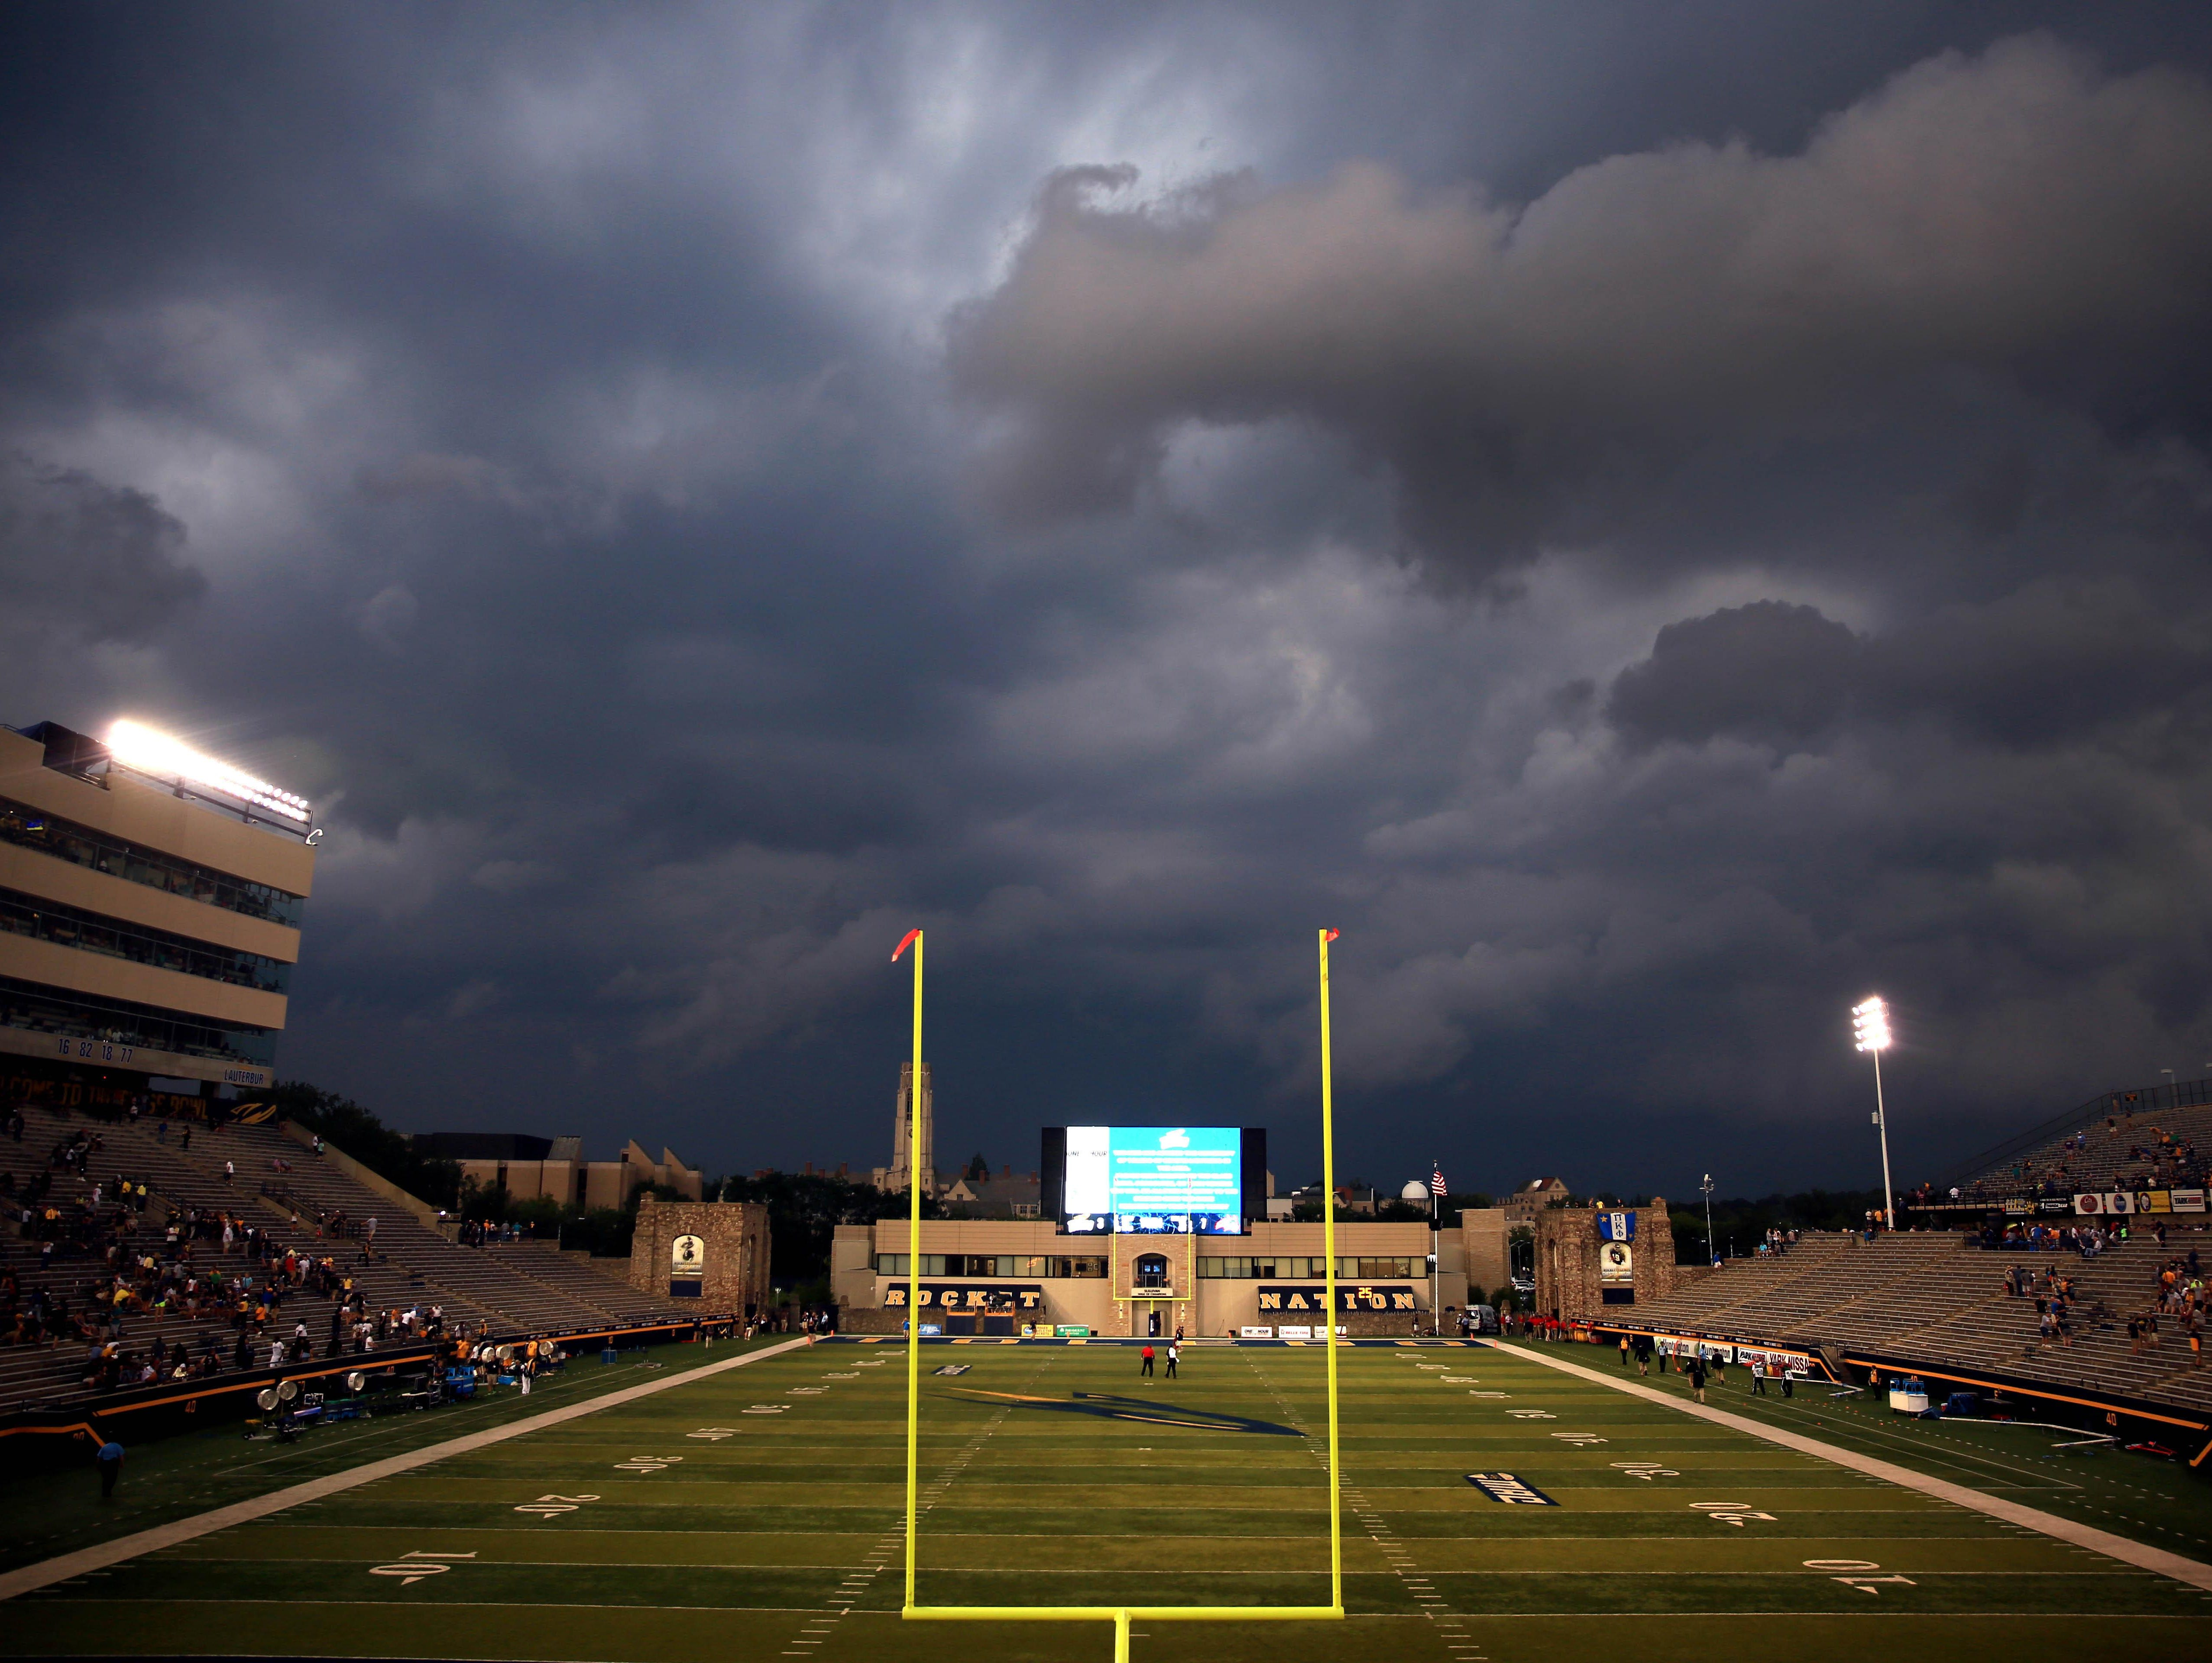 Lightning delays that totaled more than three and a half hours canceled Toldeo's season-opening game at its home field, the Glass Bowl, last week. Toledo led Stony Brook, 16-7, at halftime when the game was stopped.